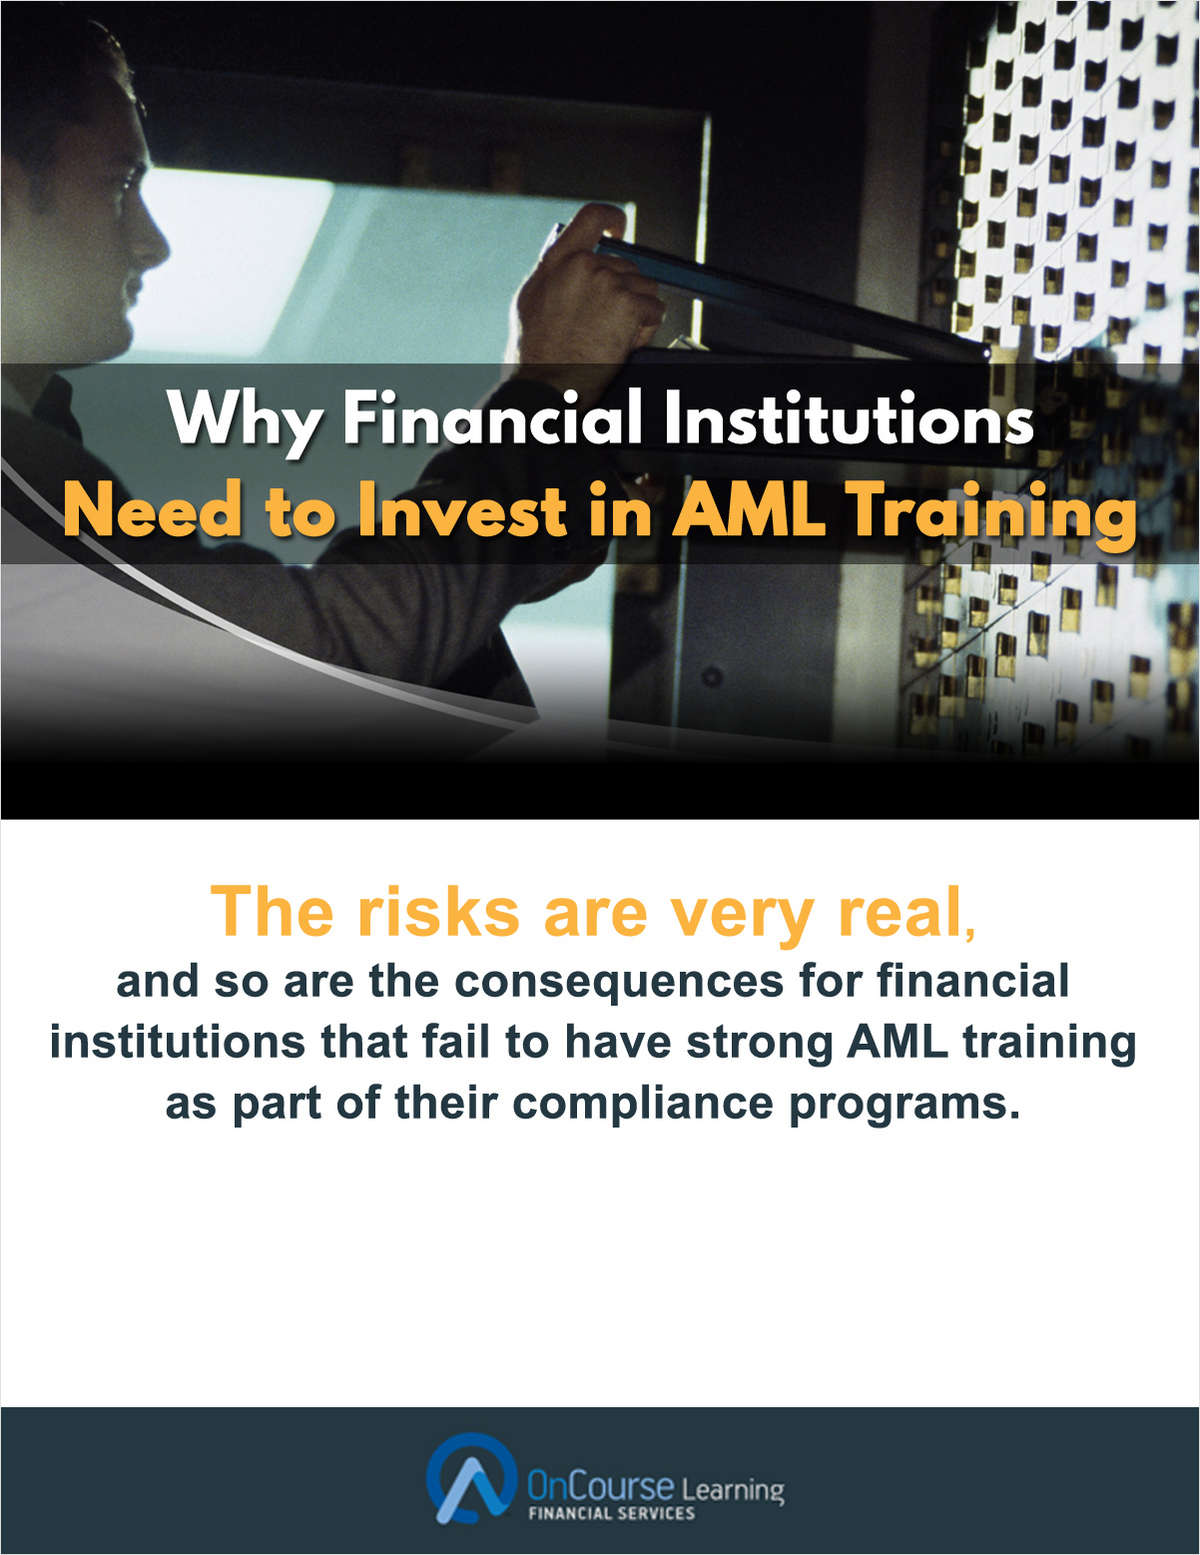 Why Financial Institutions Need to Invest in AML Training